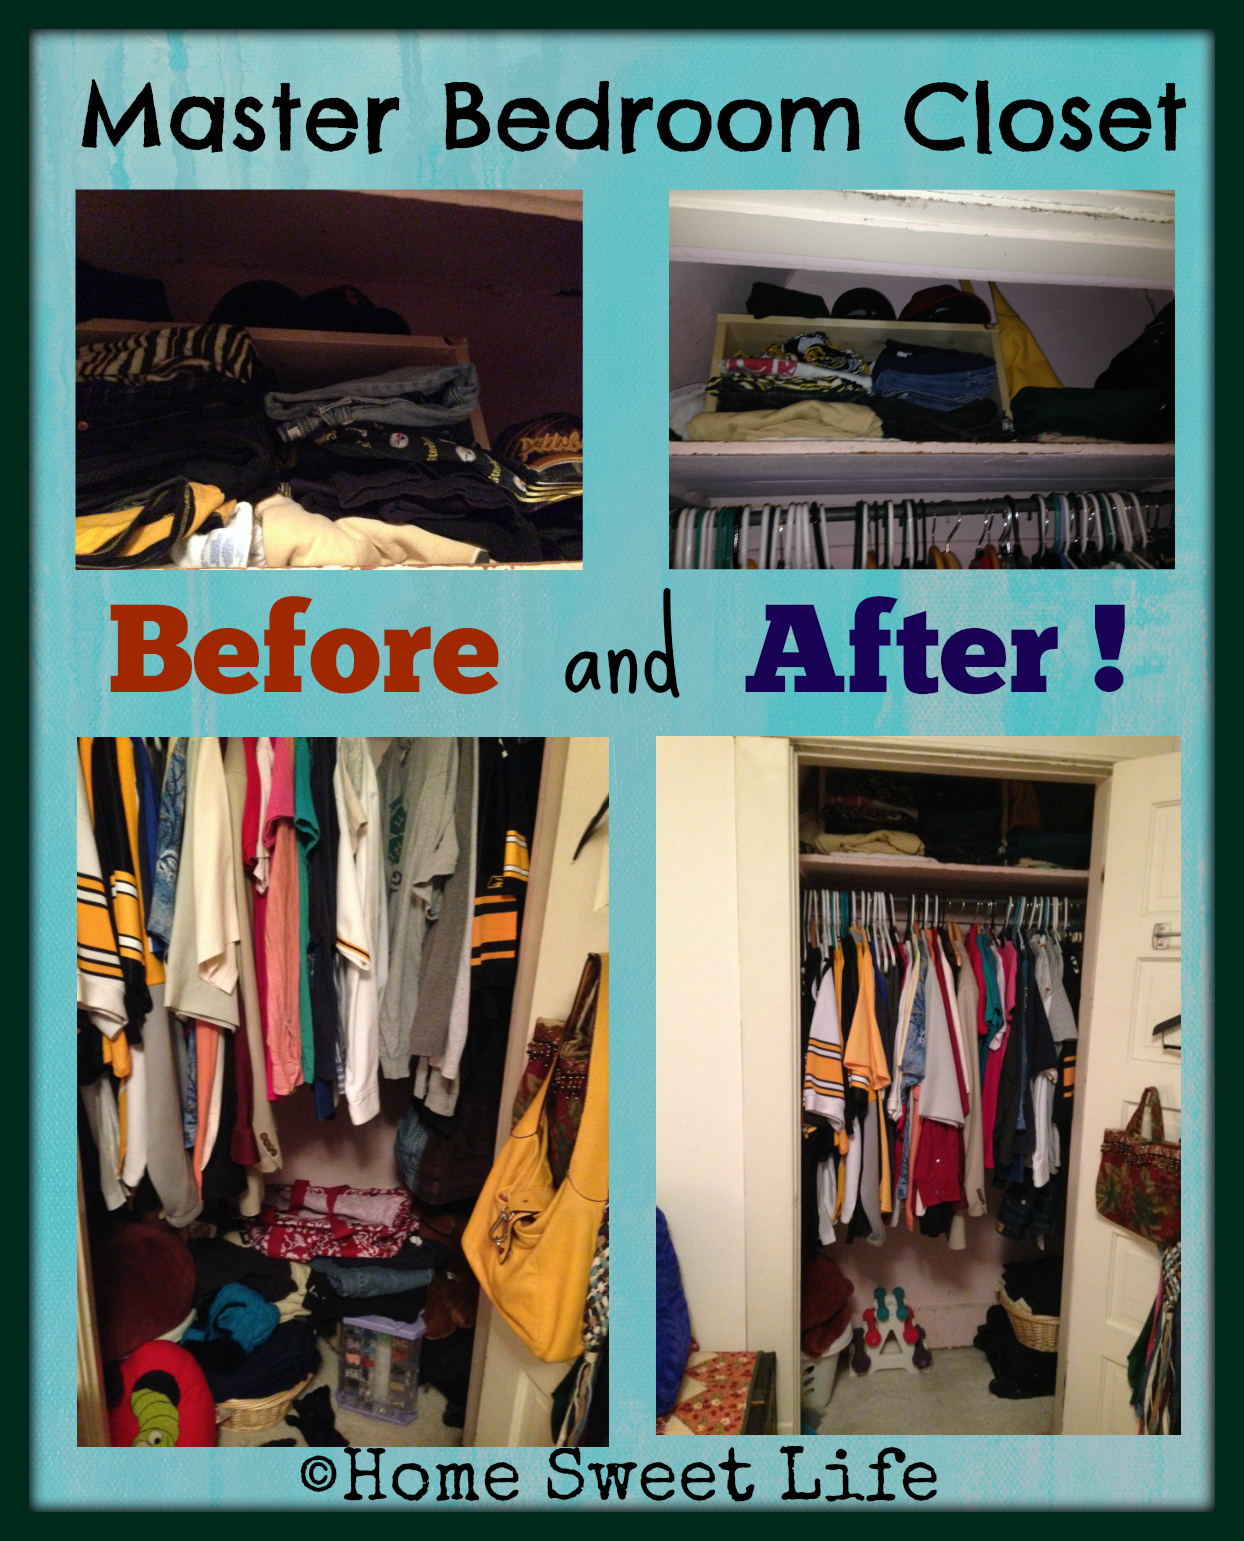 34 weeks of cleaning with friends, master bedroom closet